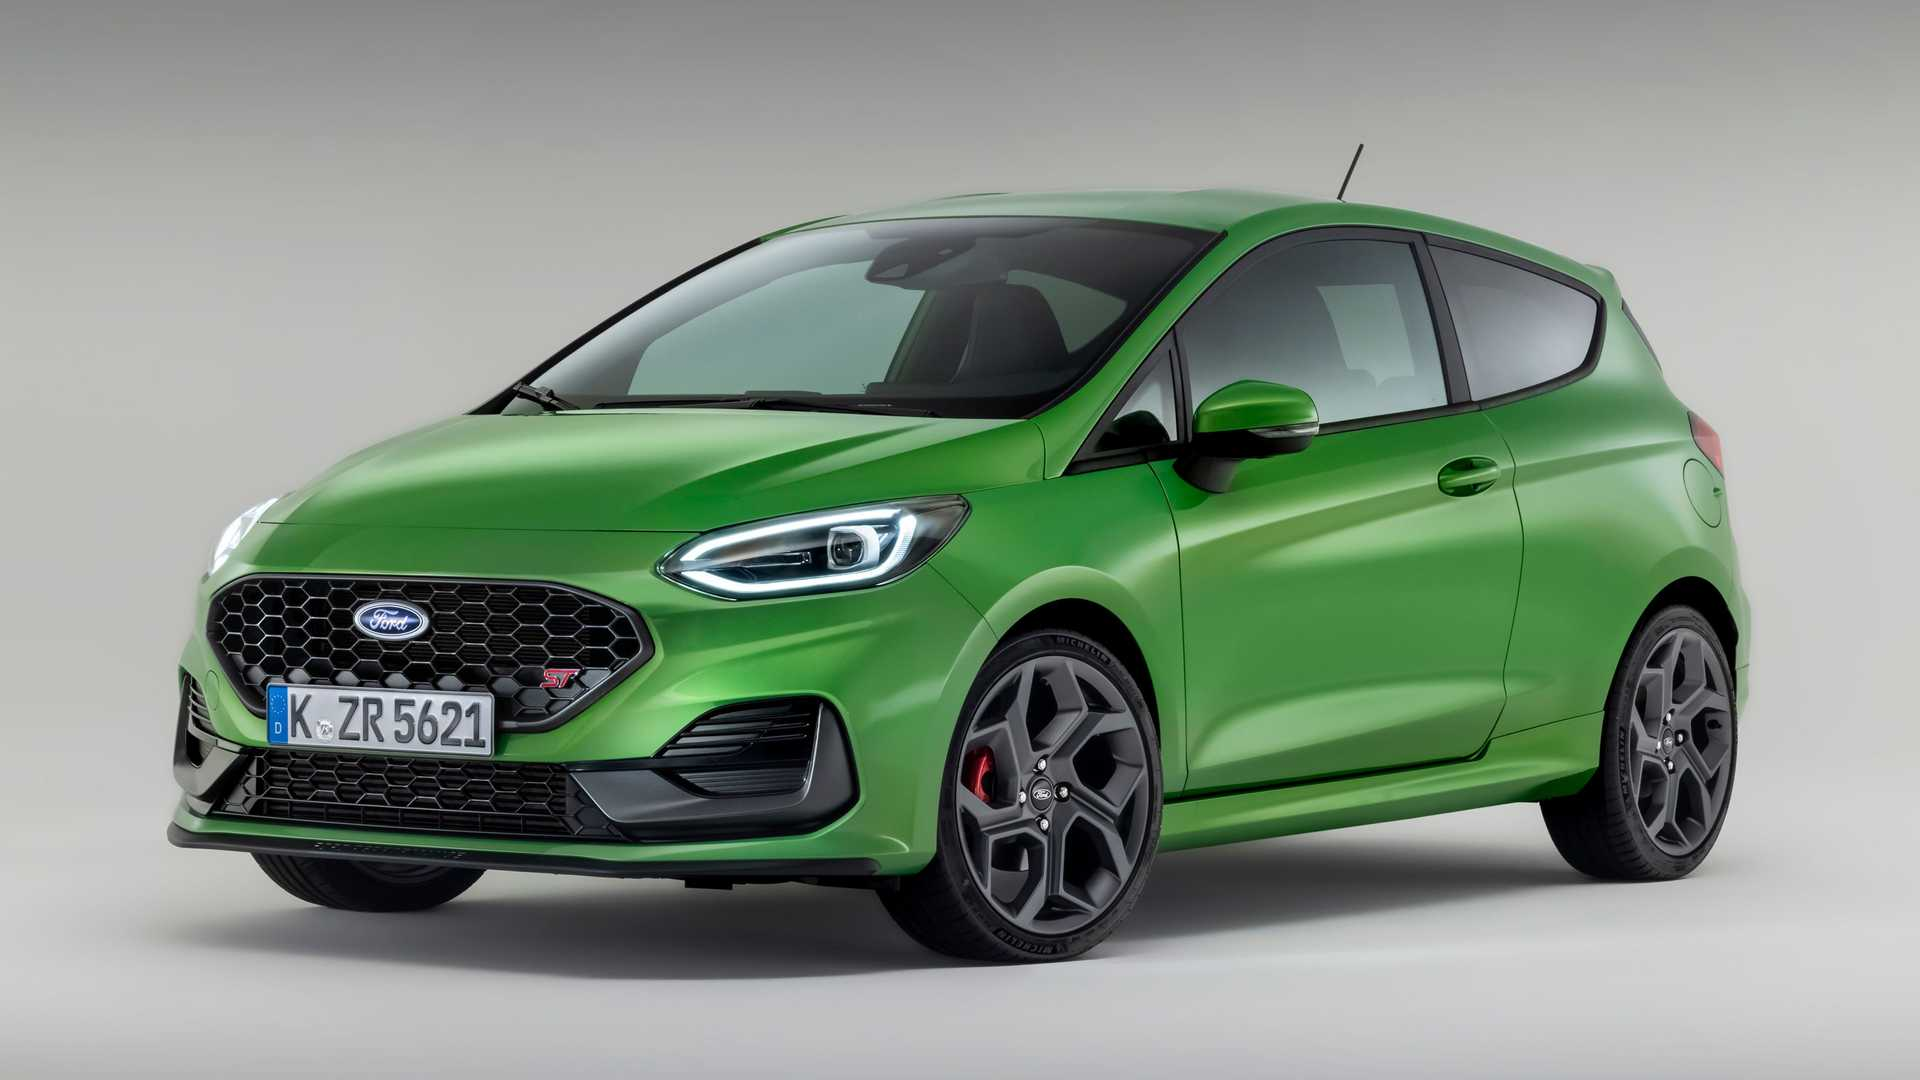 2022 Ford Fiesta Facelift Debuts Matrix LED Headlights, Extra Torque For ST